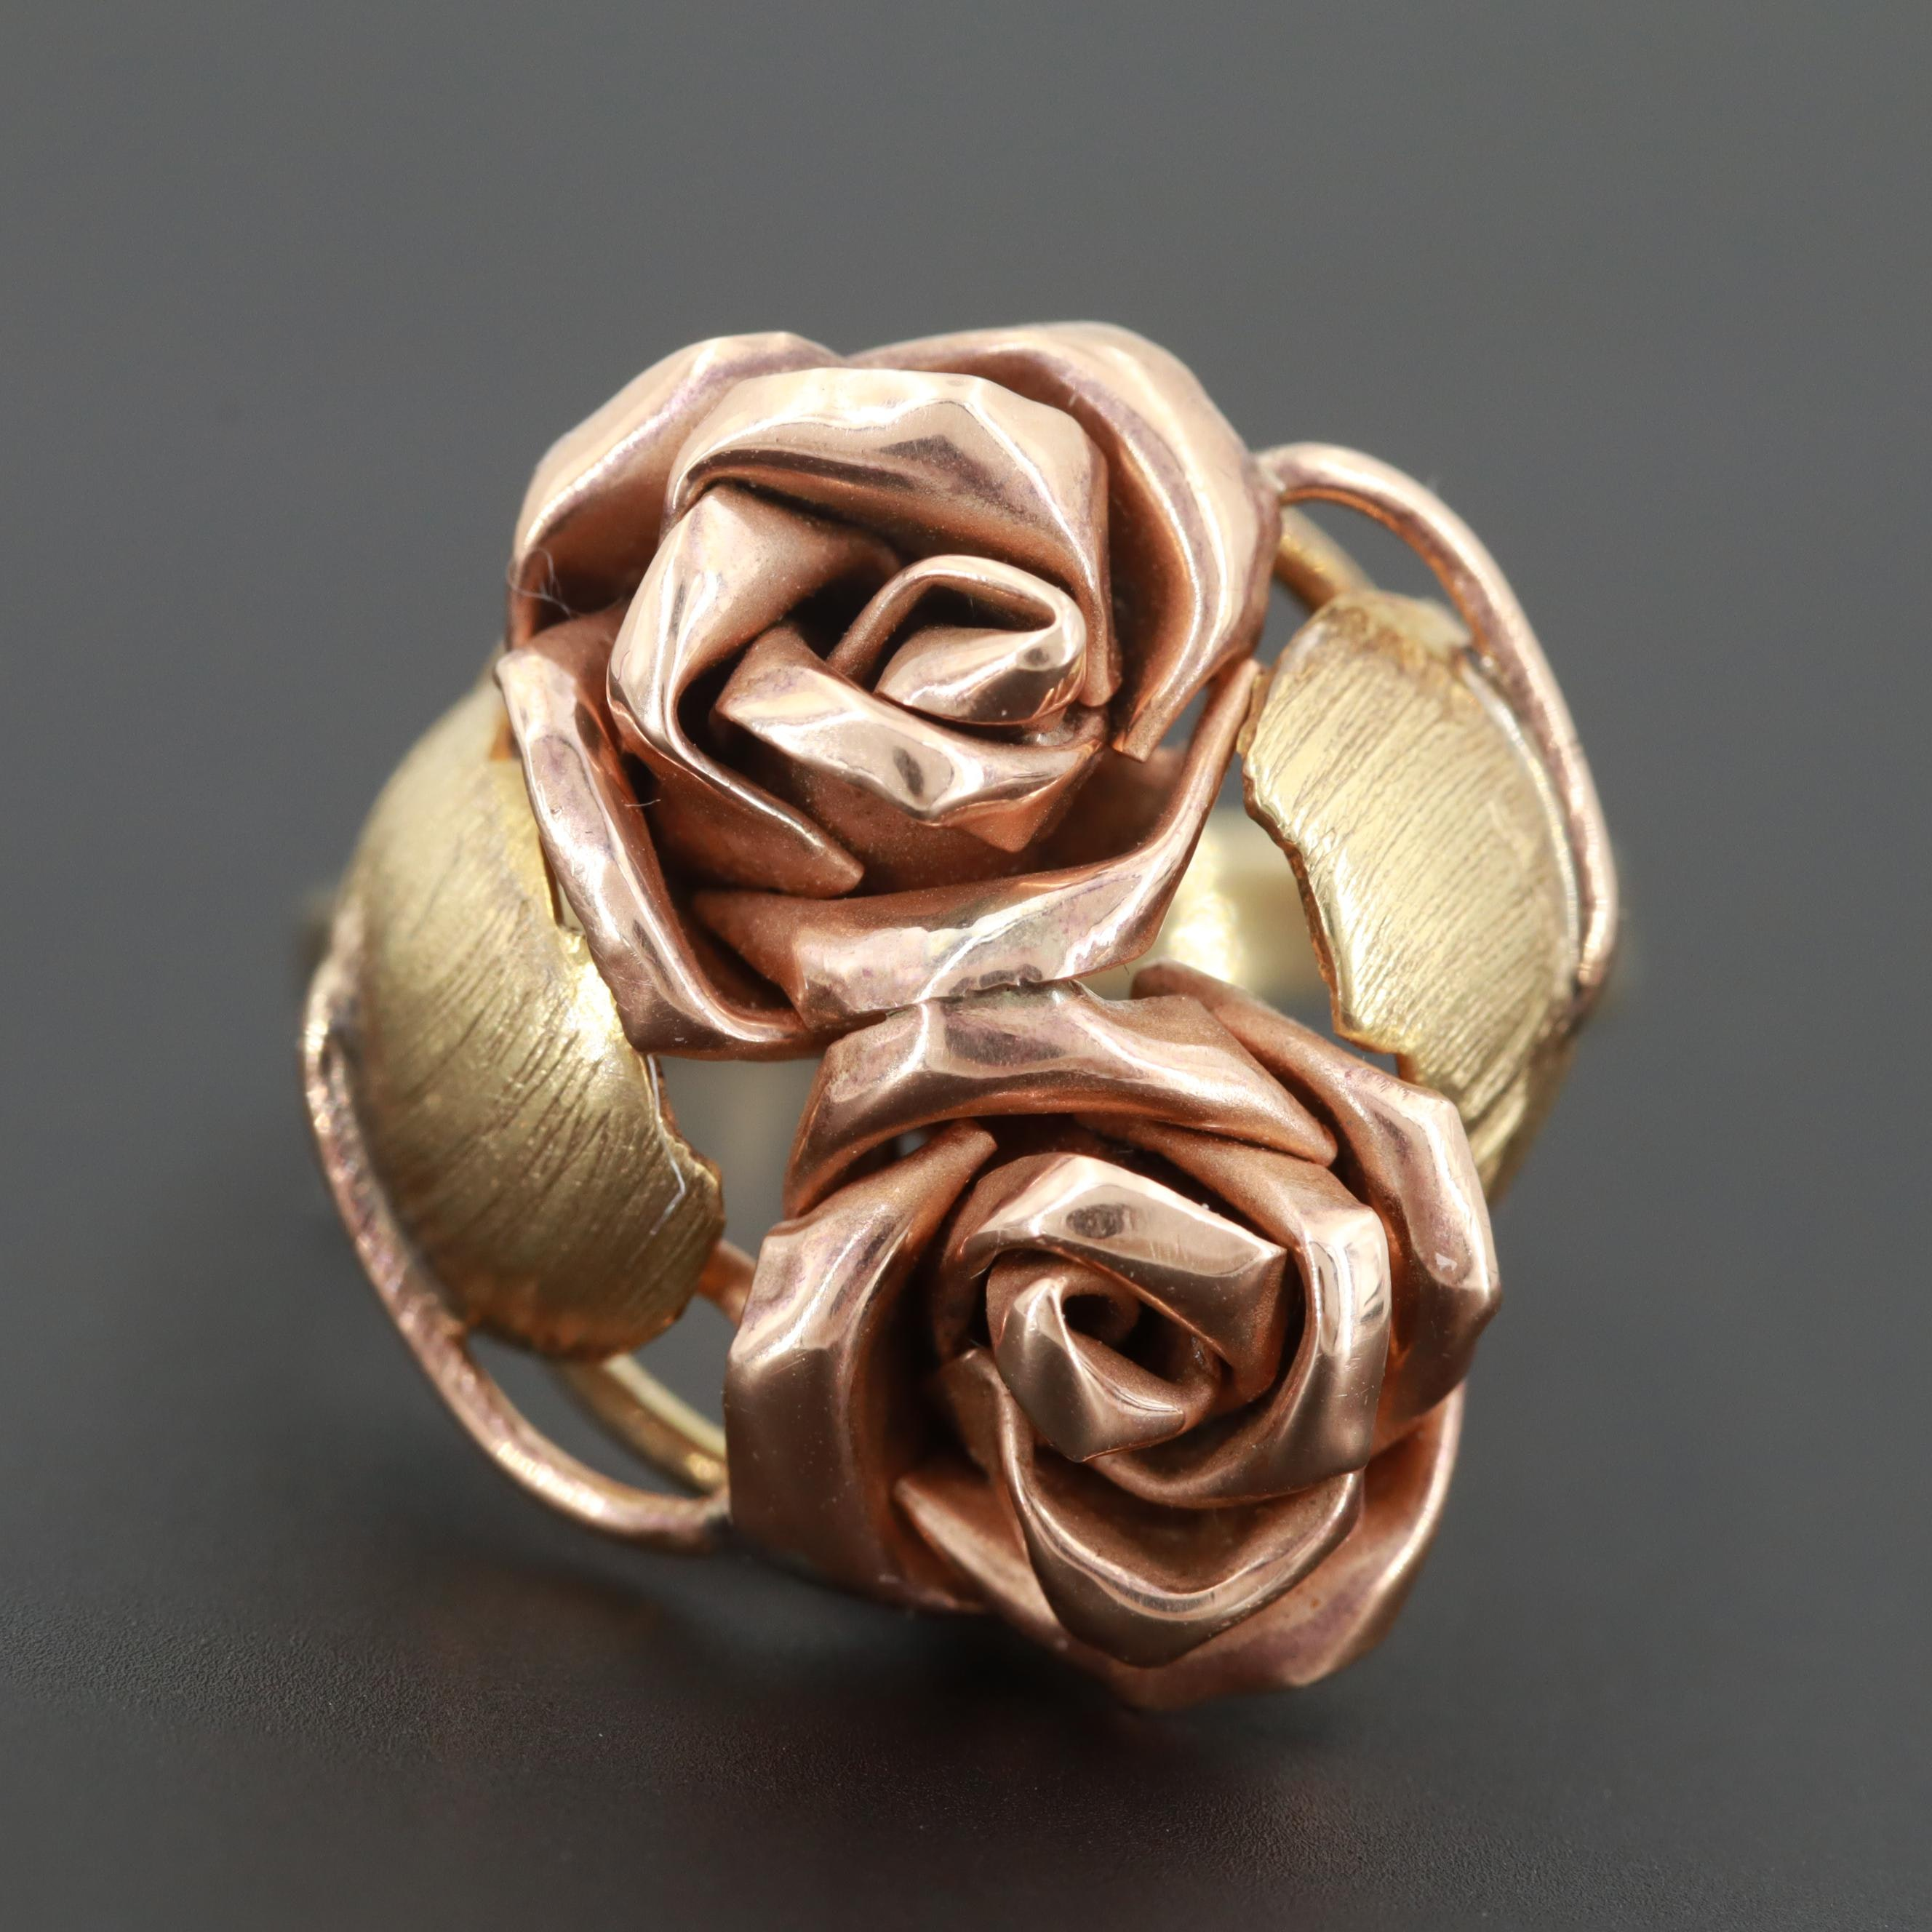 Austrian 14K Yellow Gold Ring with Rose Gold Rose Accents